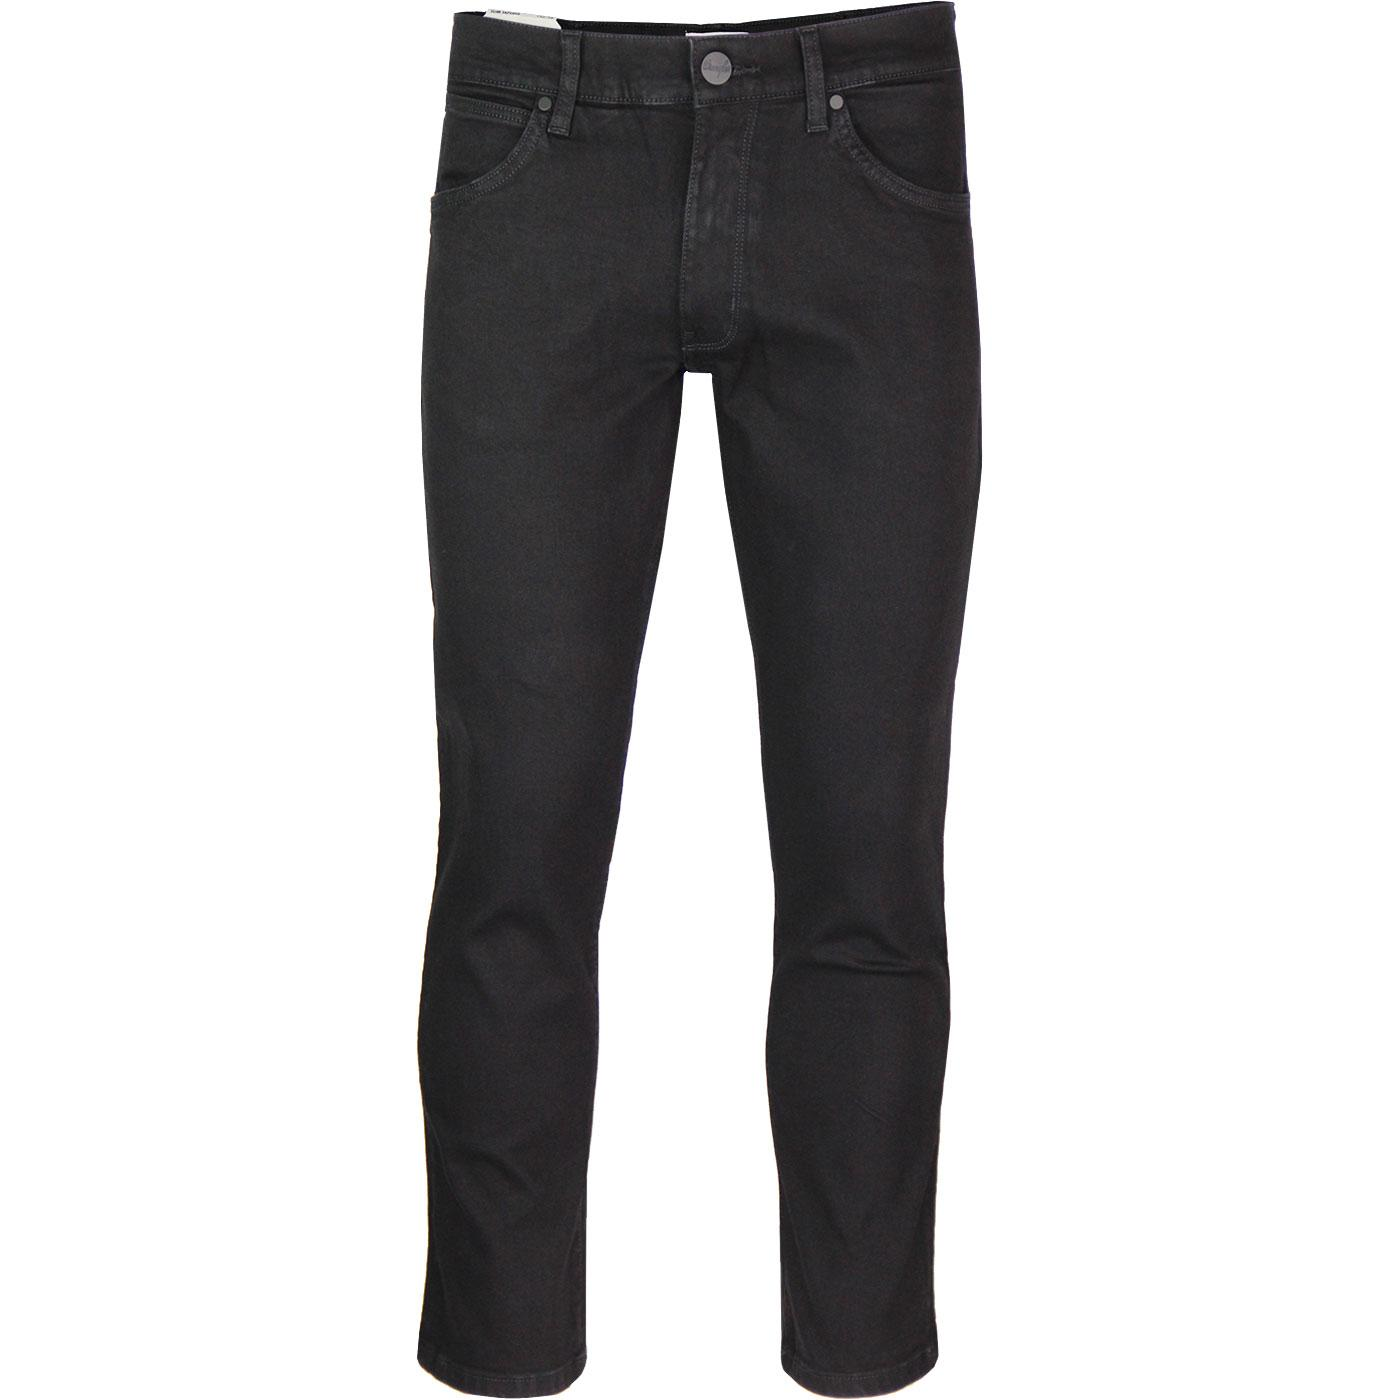 Larston WRANGLER Slim Tapered Denim Jeans (BL)